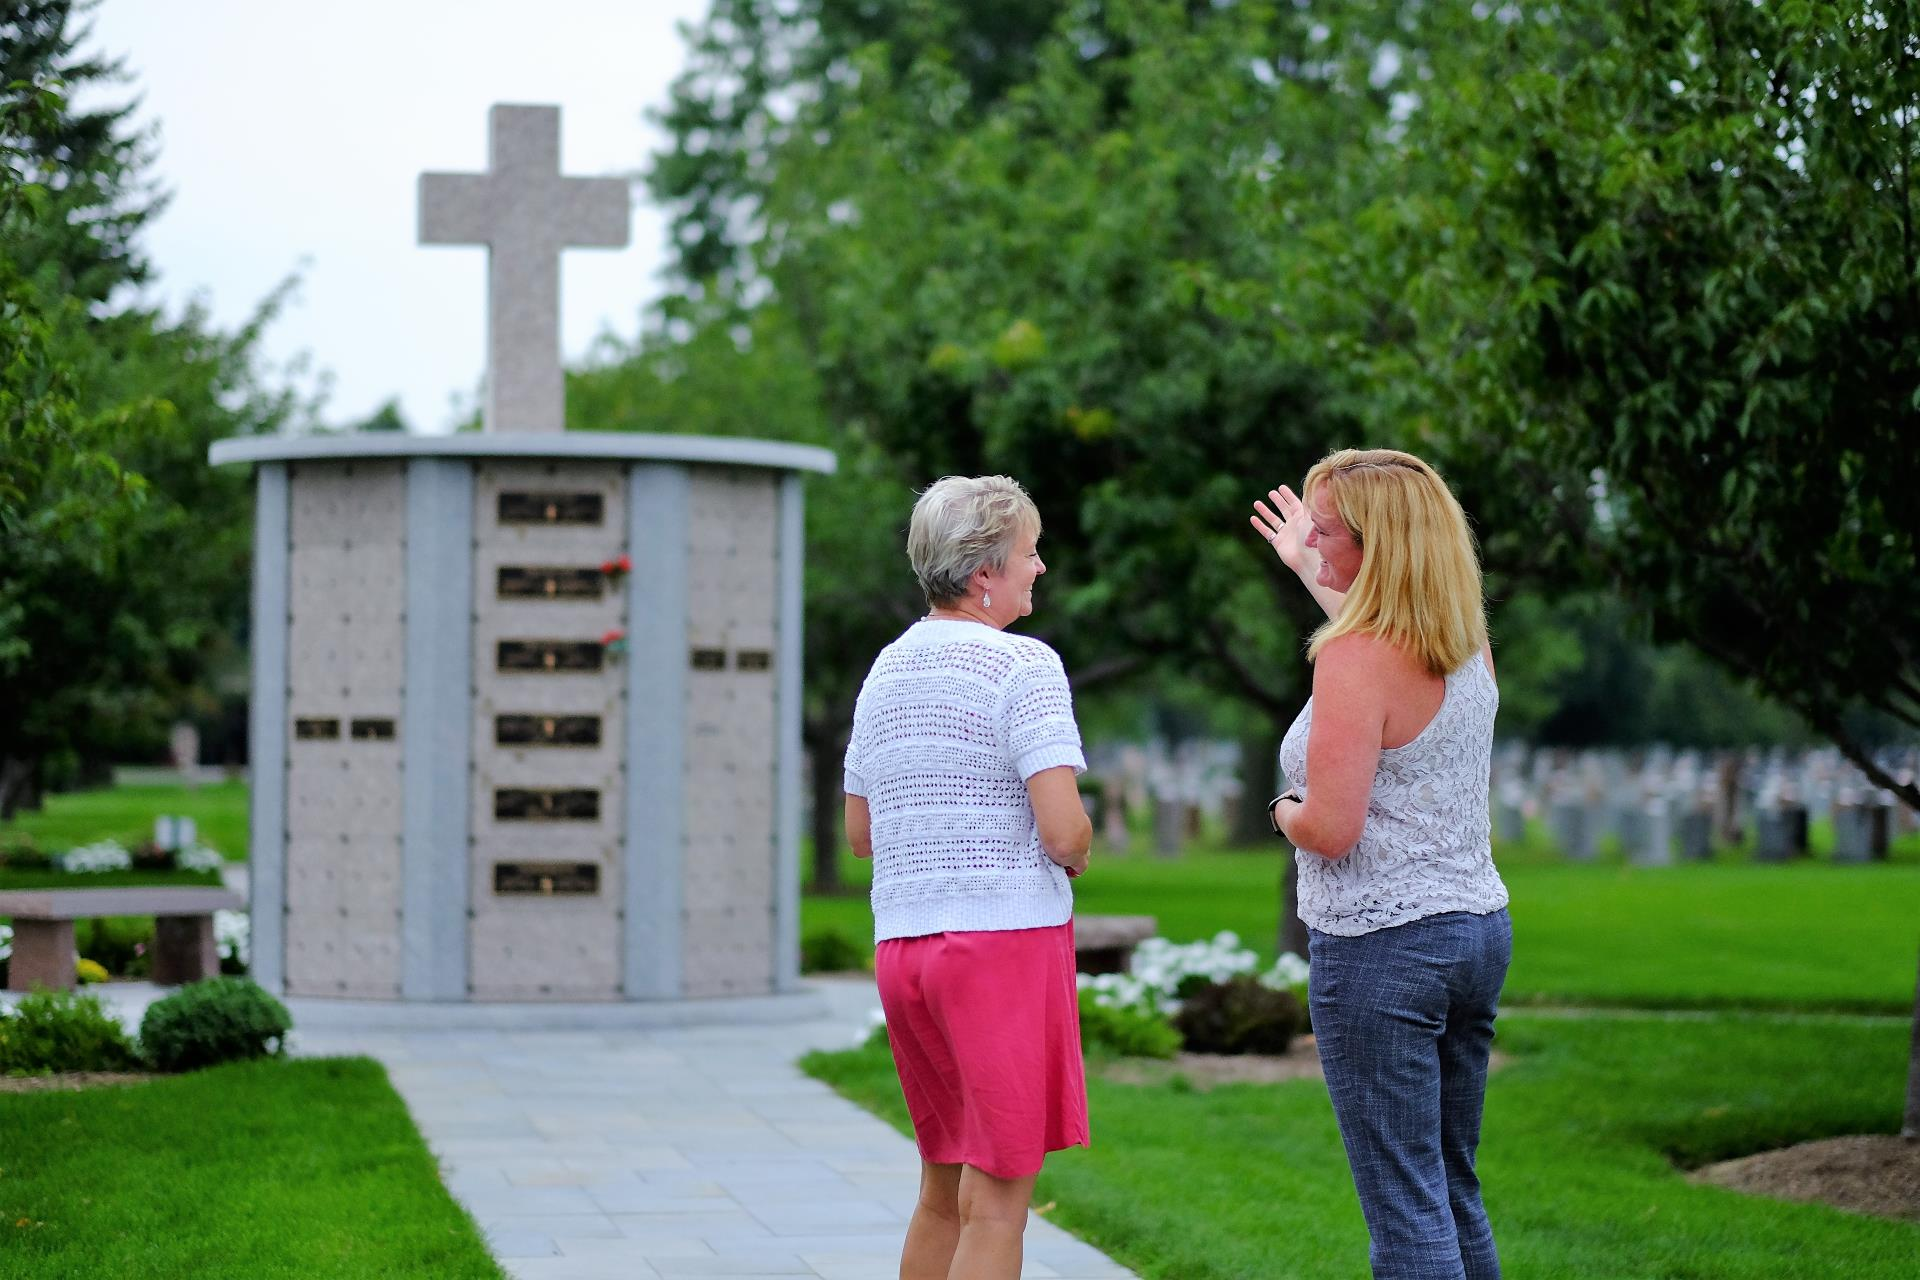 2 women near a columbarium